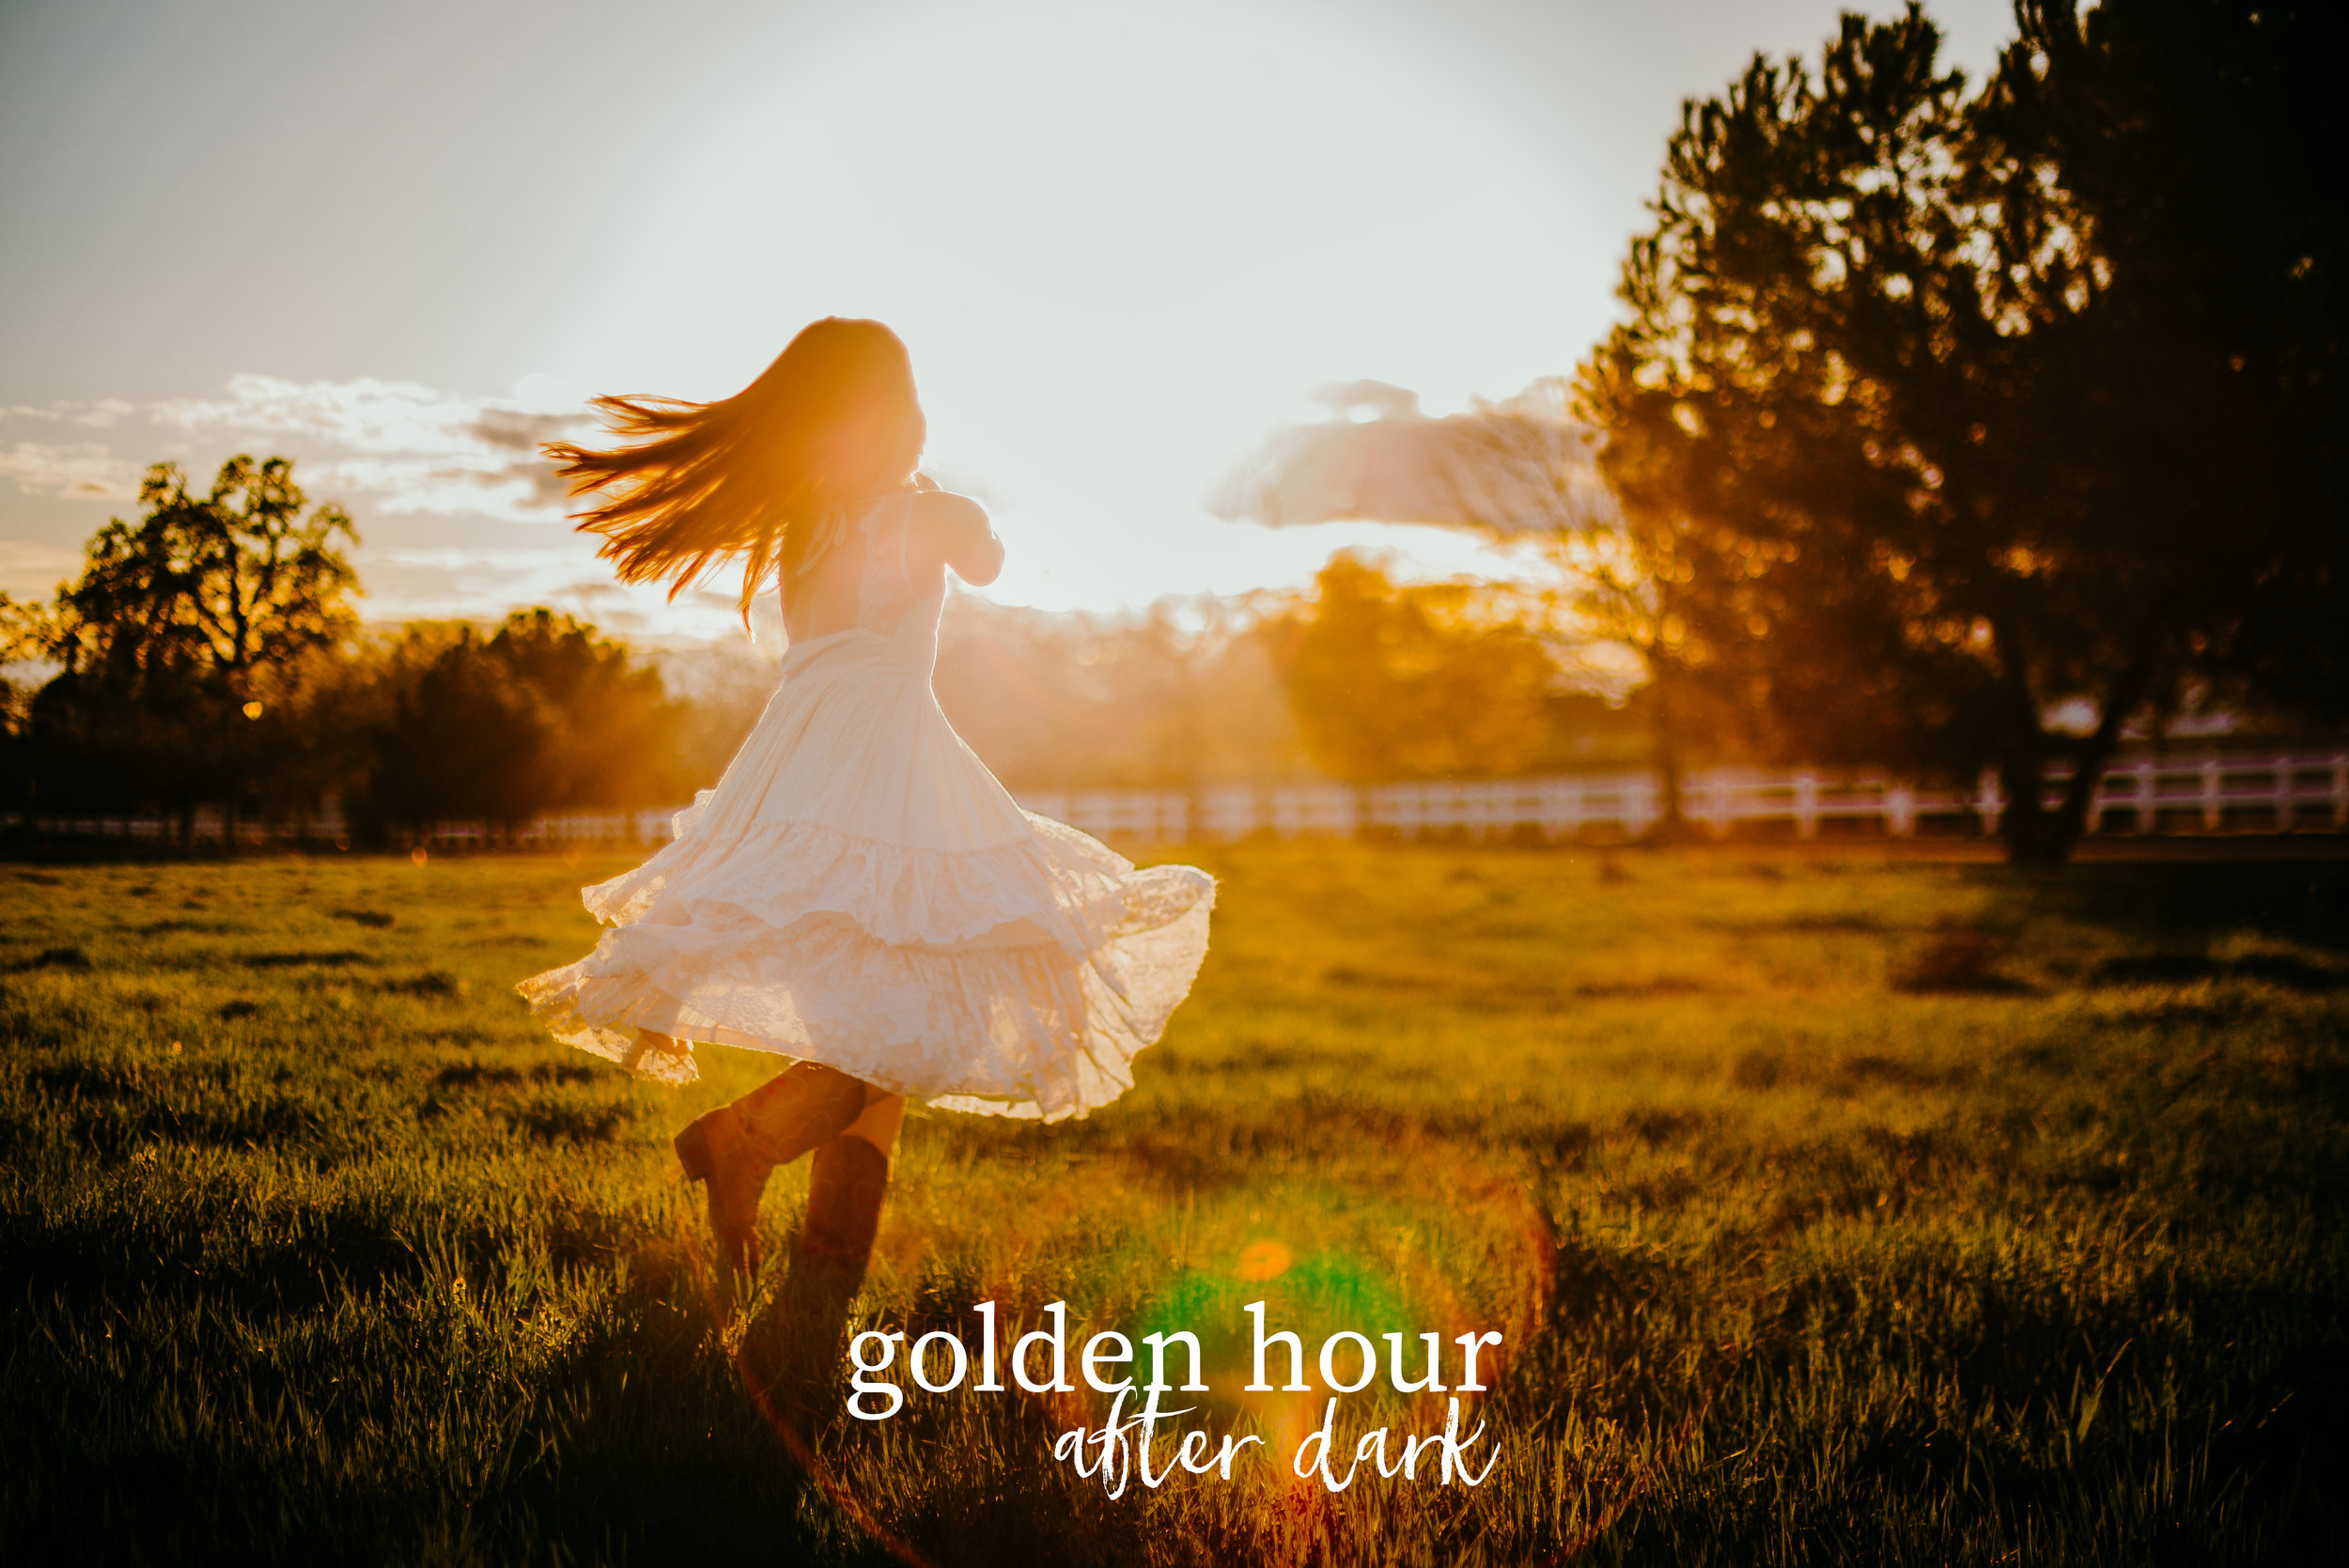 golden hour | after dark   - if you thought   golden hour   was rich, just add this gorgeous preset to your sun-kissed flares for the ultimate golden takeover.